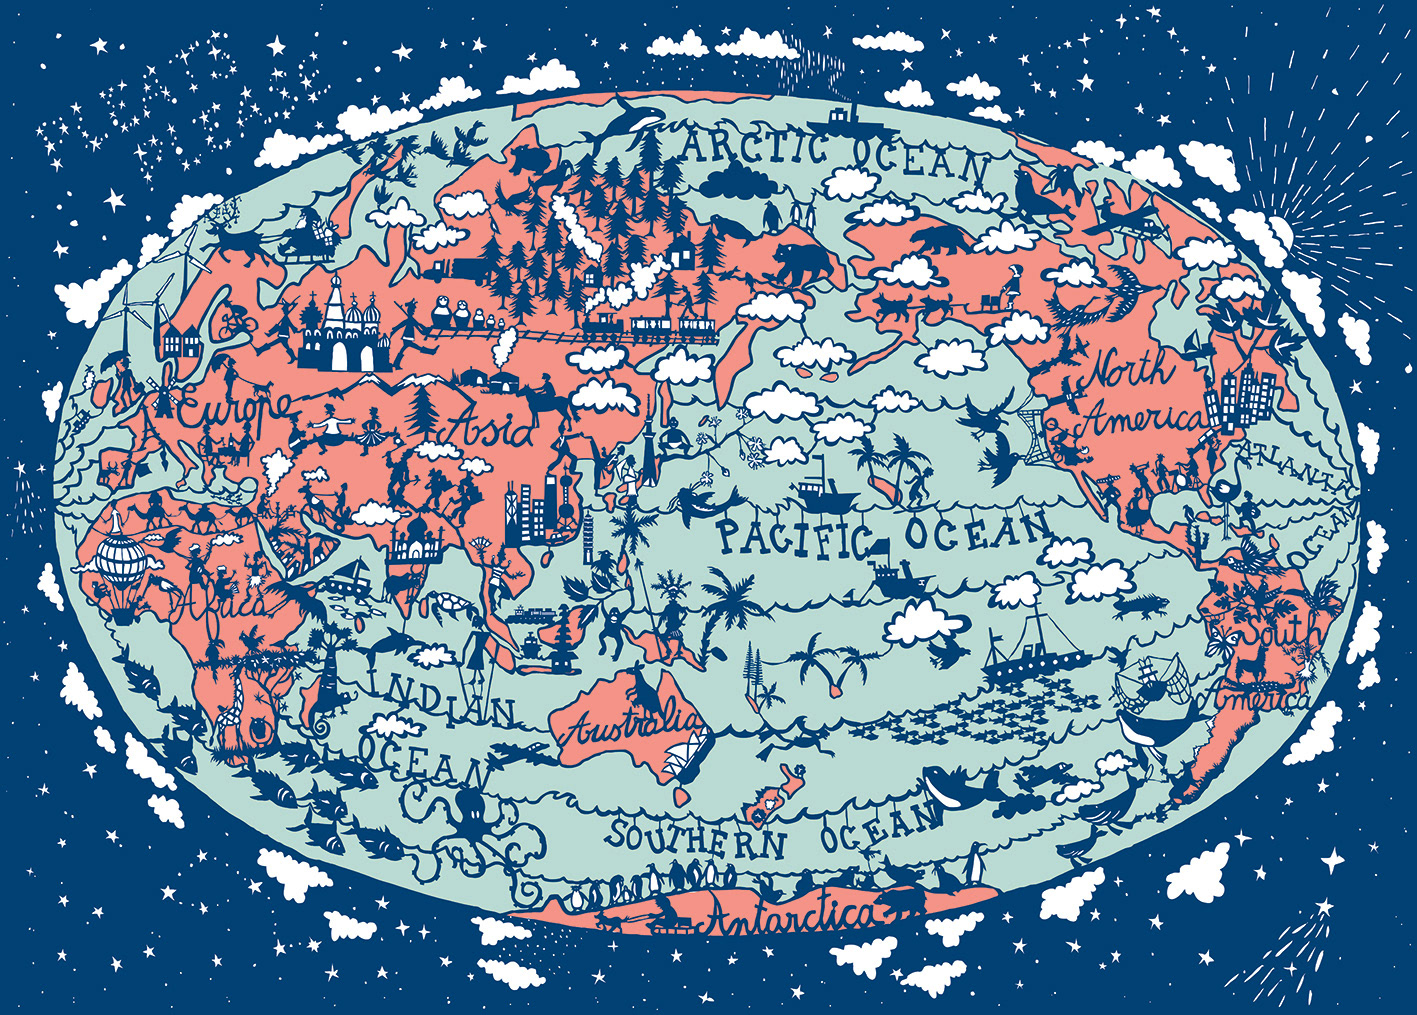 Papercut world map by Julie Summerbelle